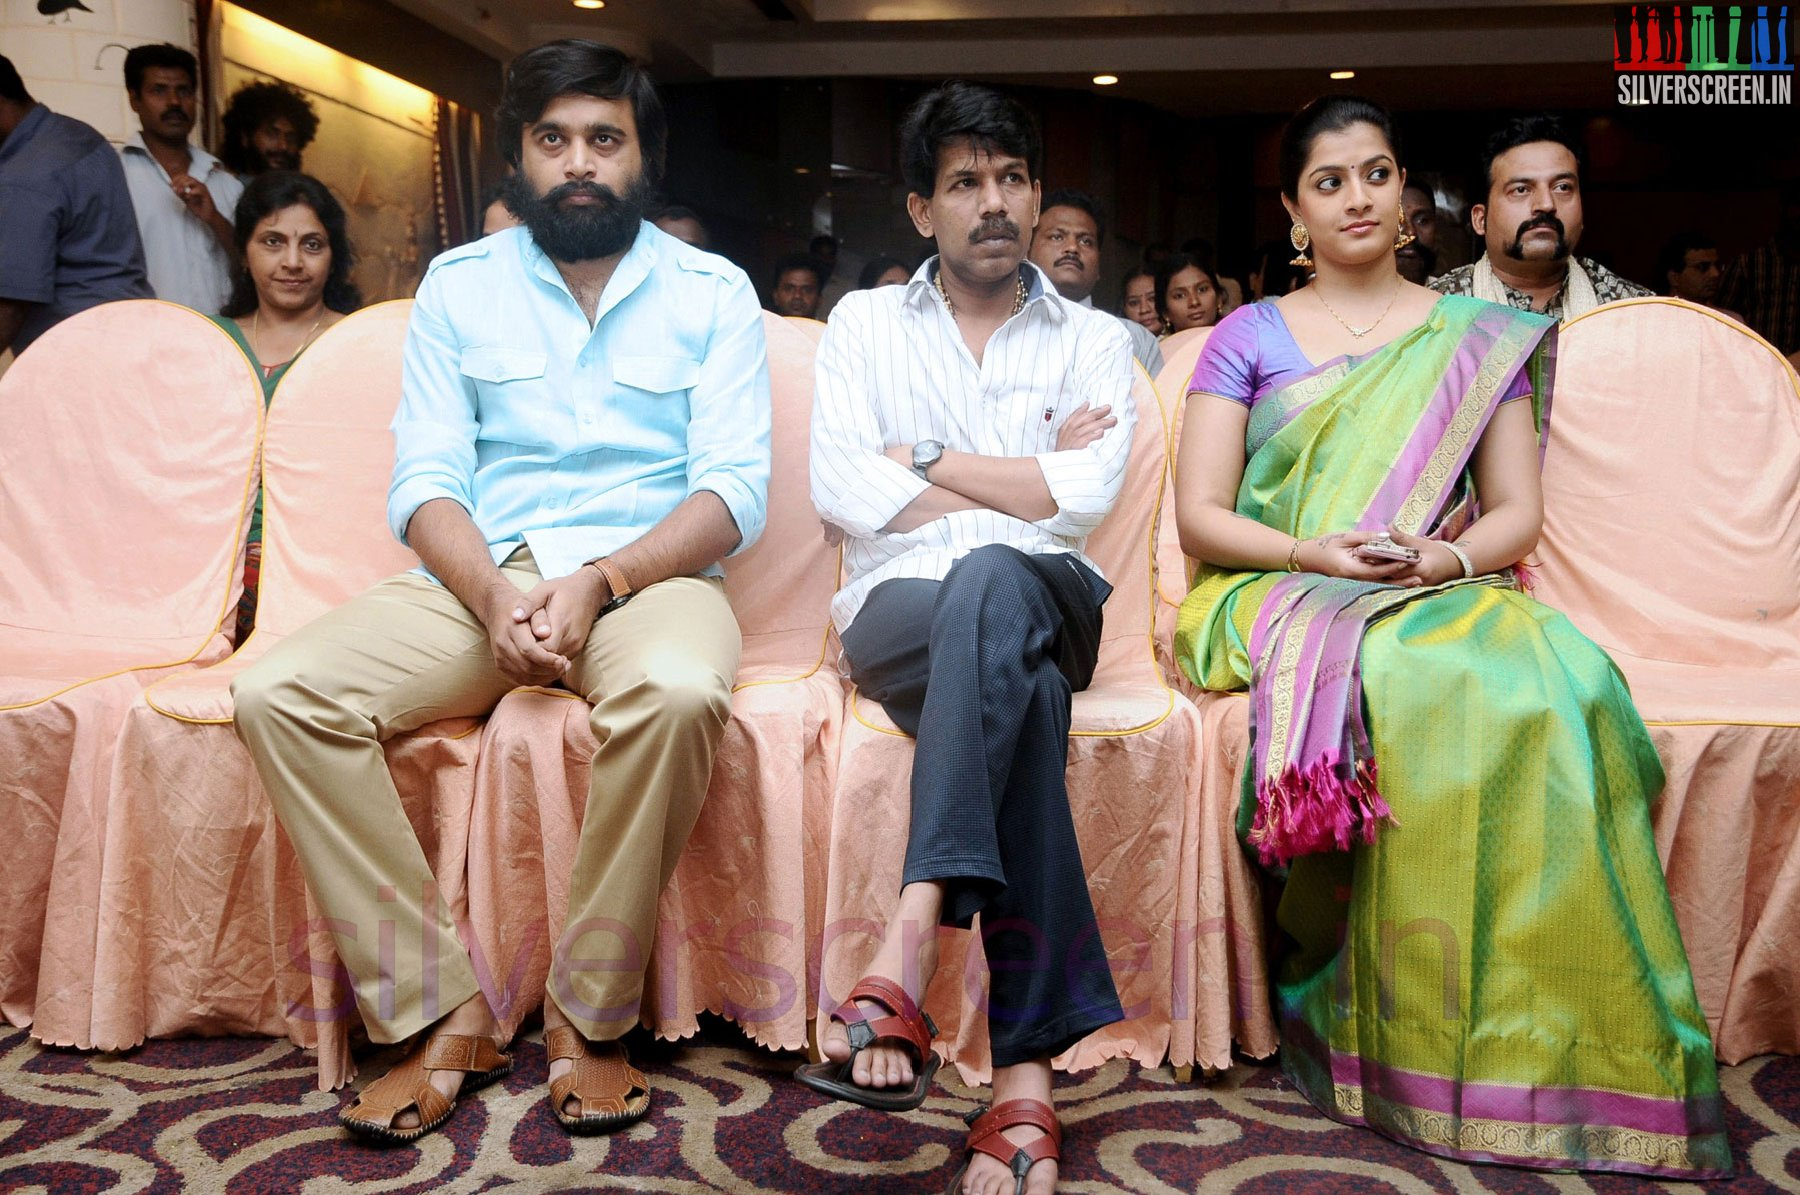 Director Bala Actor Sasikumar And Actress Varalaxmi Sarathkumar At Tharai Thappattai Or Thaarai Thappatai Movie Launch Pooja Event